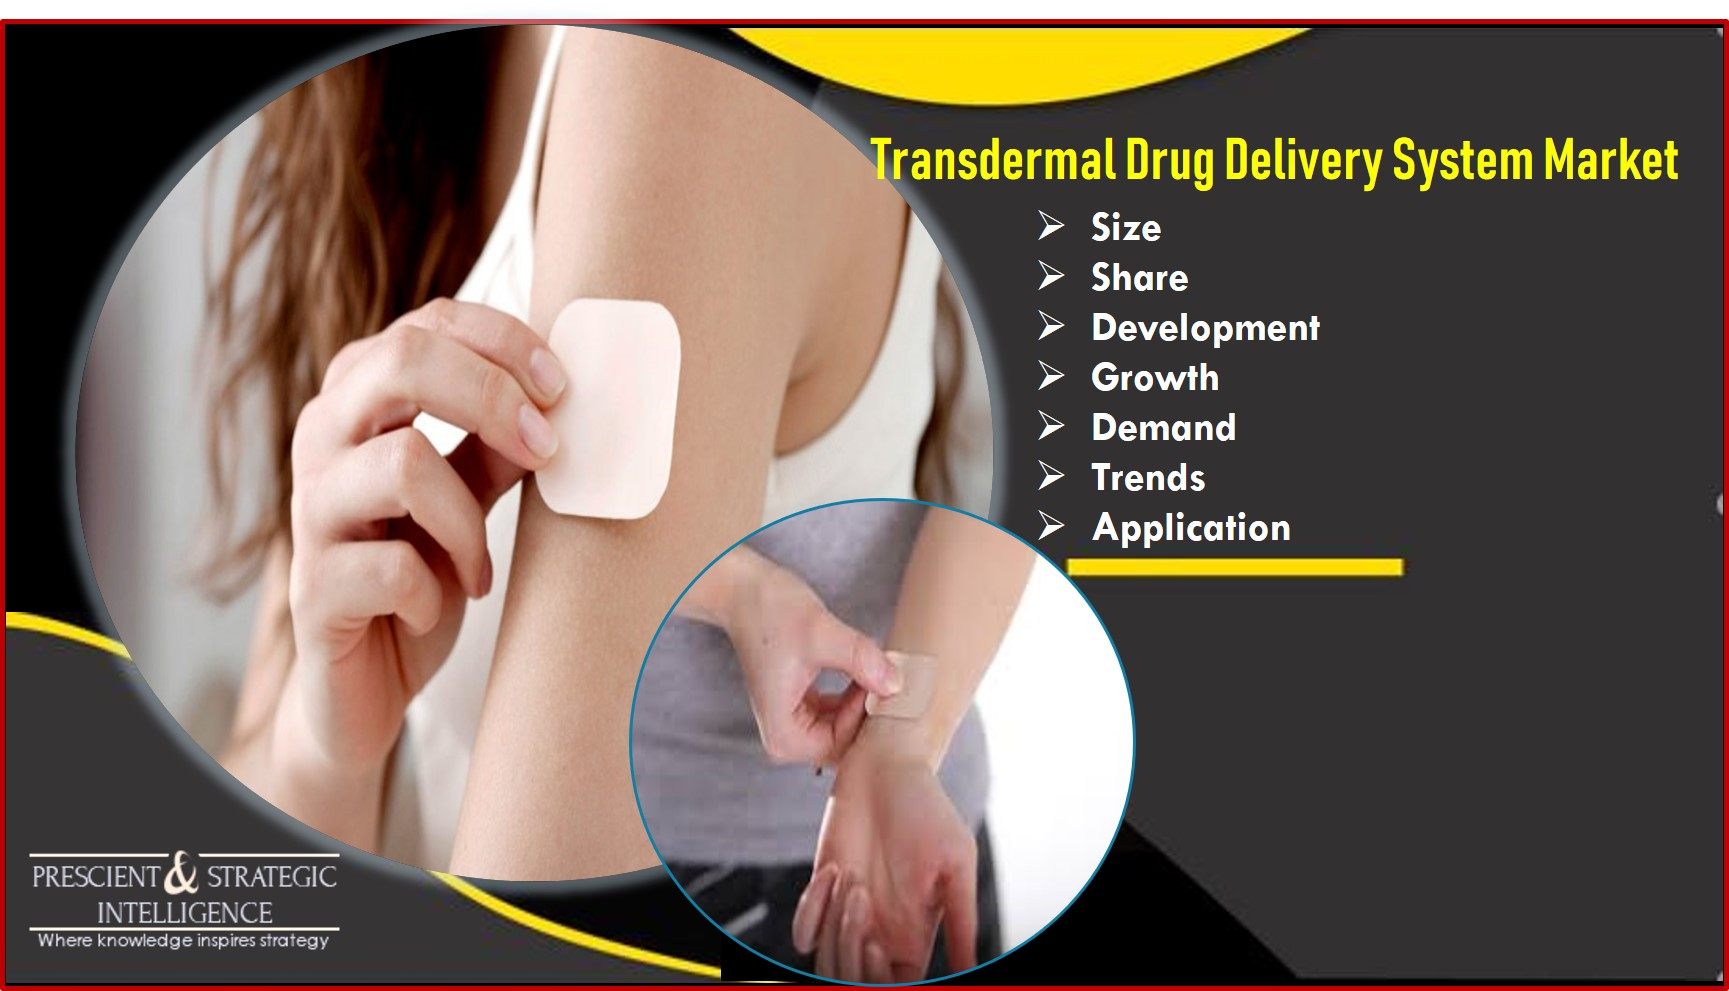 Transdermal Drug Delivery Systems Market Growing Owing to the Need to Deal with Pain